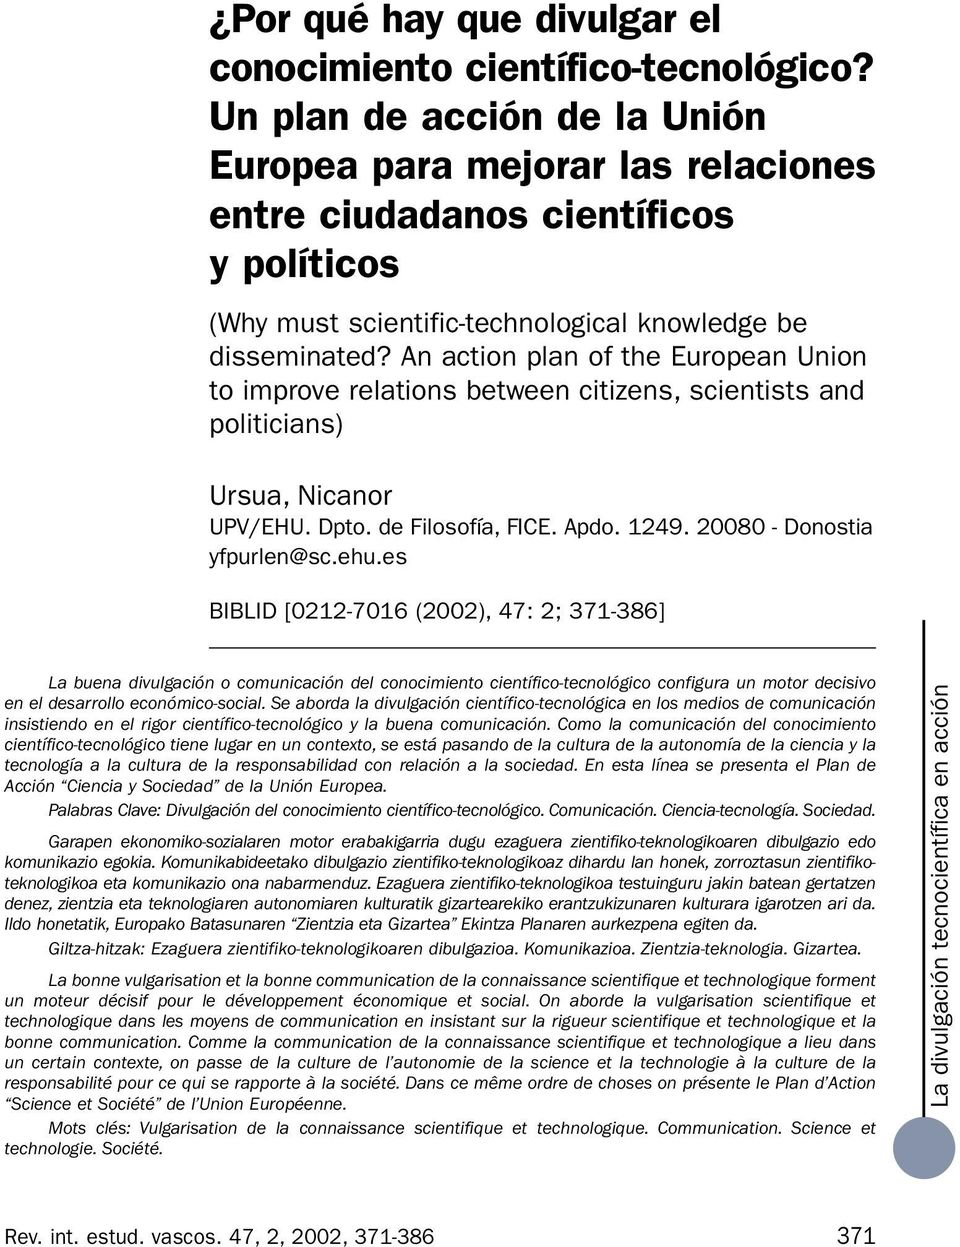 An action plan of the European Union to improve relations between citizens, scientists and politicians) Ursua, Nicanor UPV/EHU. Dpto. de Filosofía, FICE. Apdo. 1249. 20080 - Donostia yfpurlen@sc.ehu.